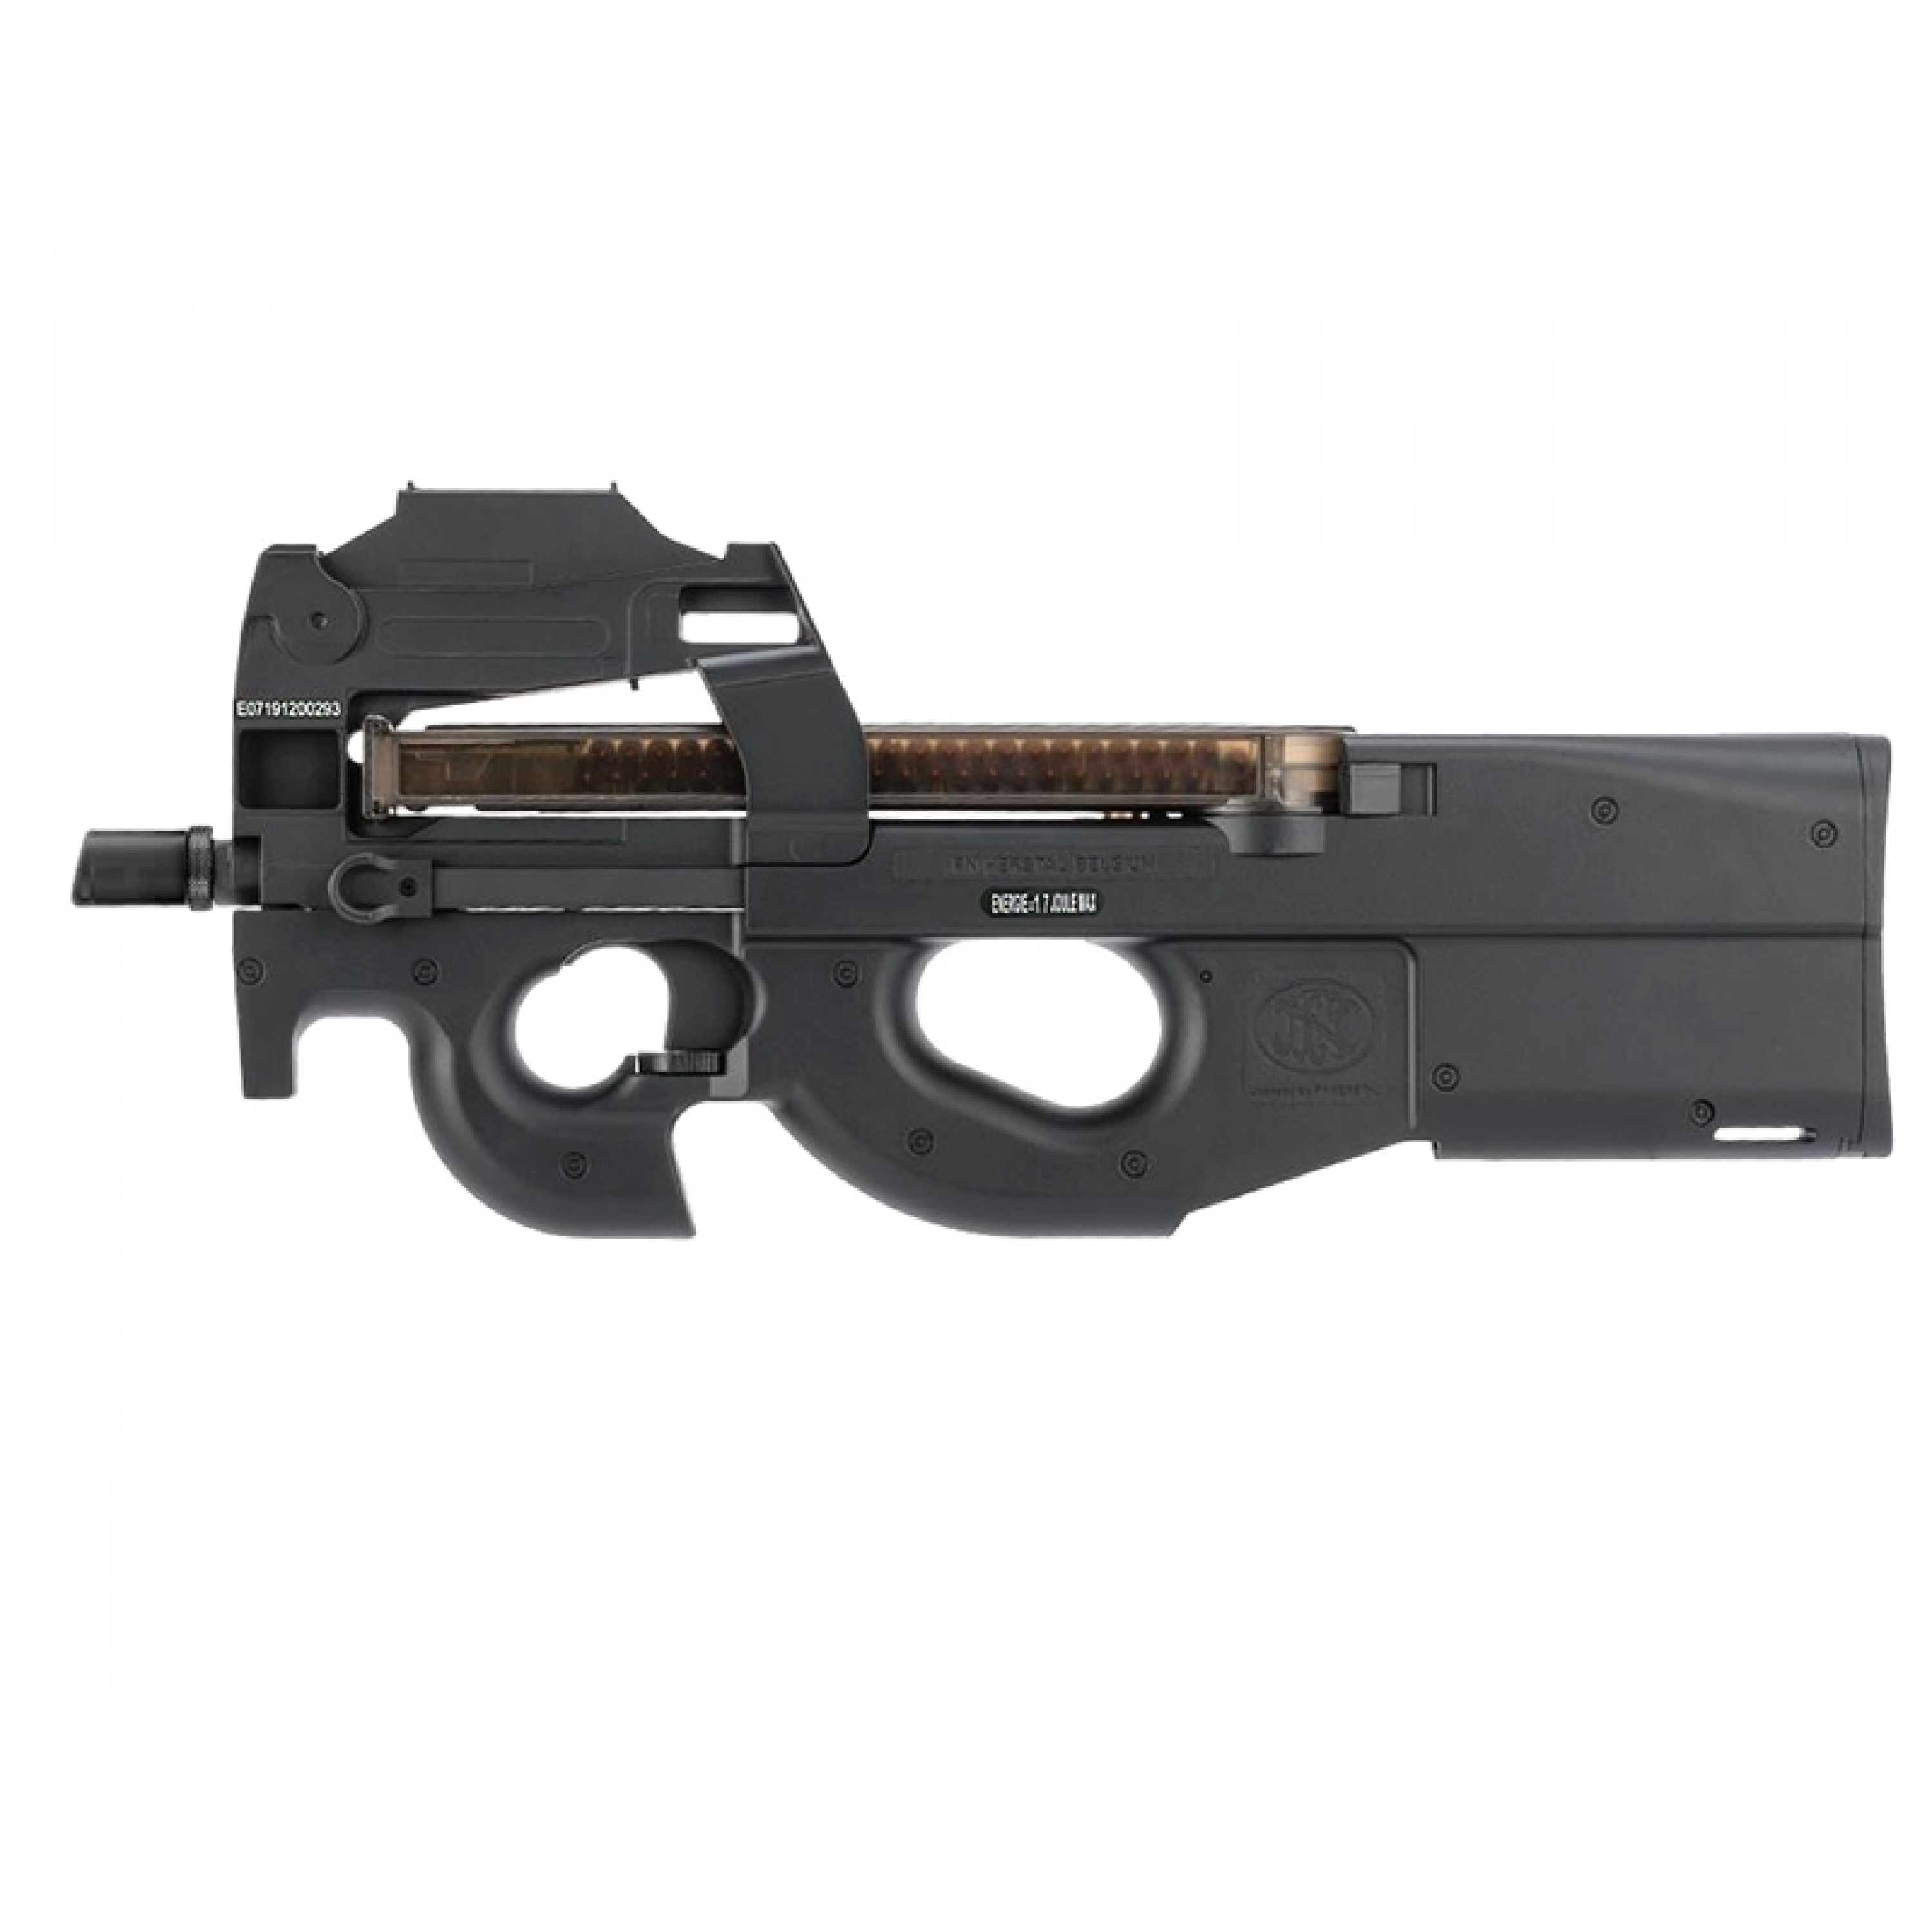 FN Herstal P90 AEG with Red Dot Sight (Black - Cybergun - 200994)